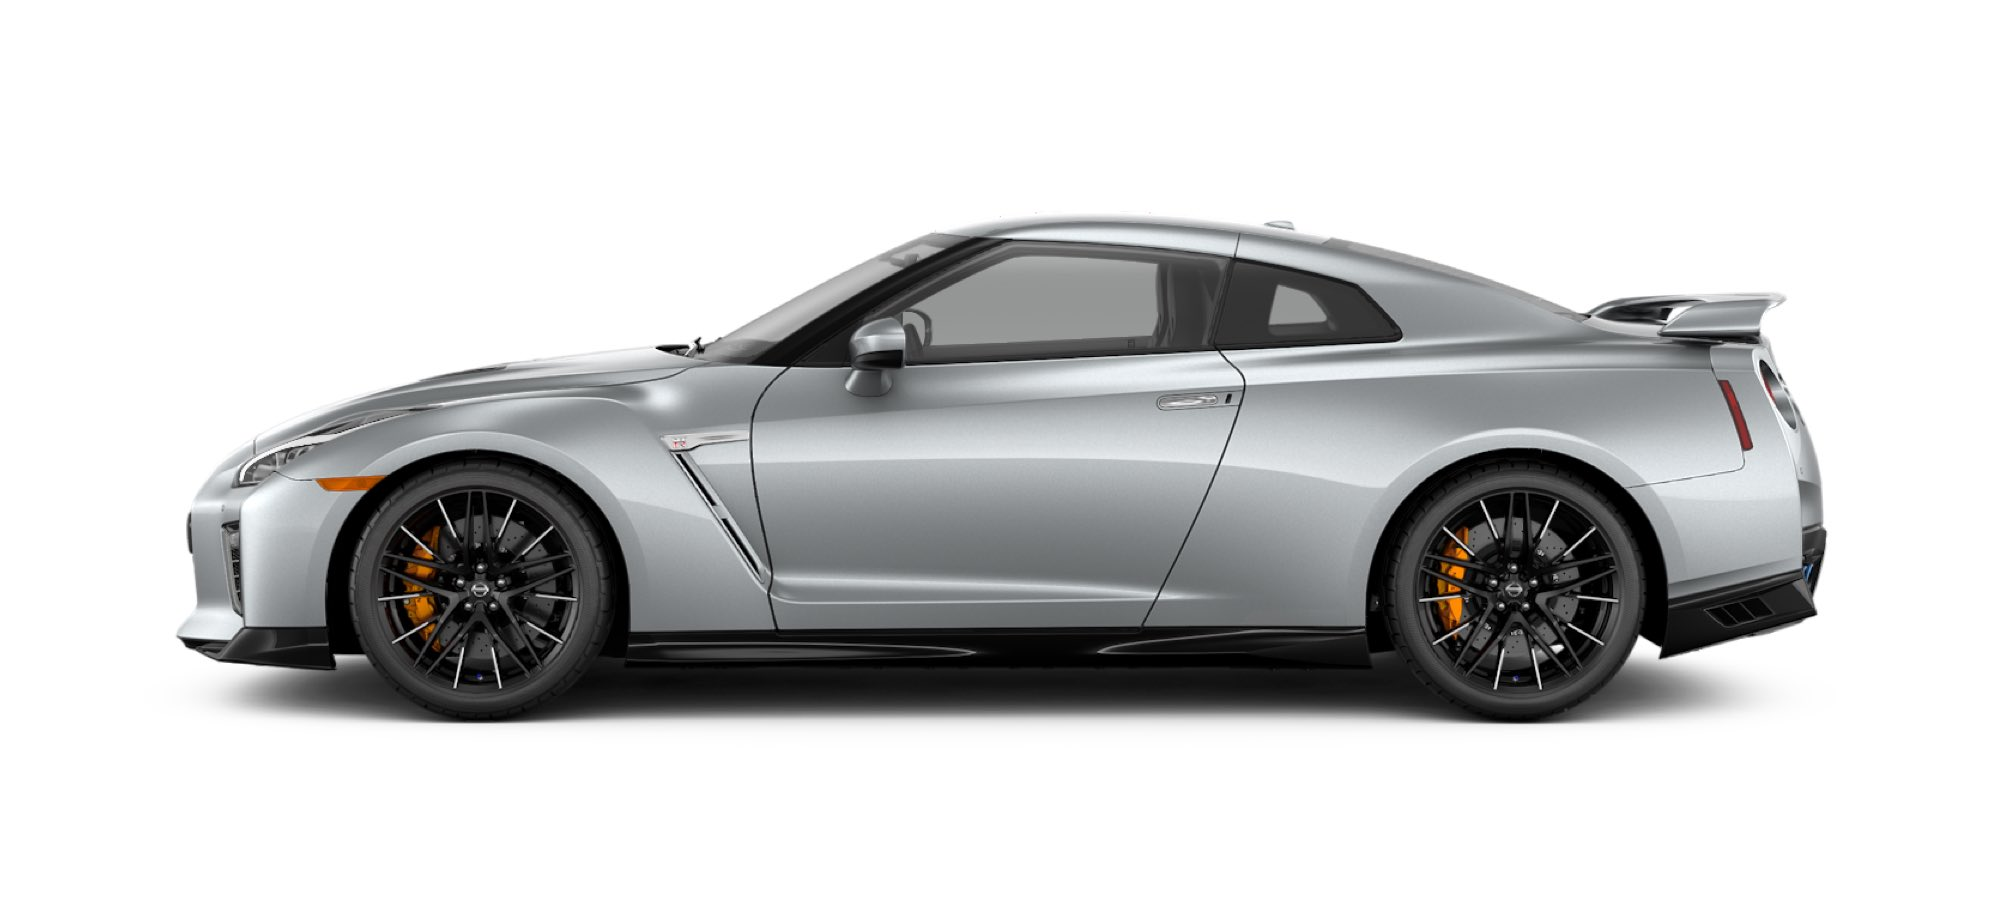 2021 Nissan GT-R in Super Silver Quadcoat